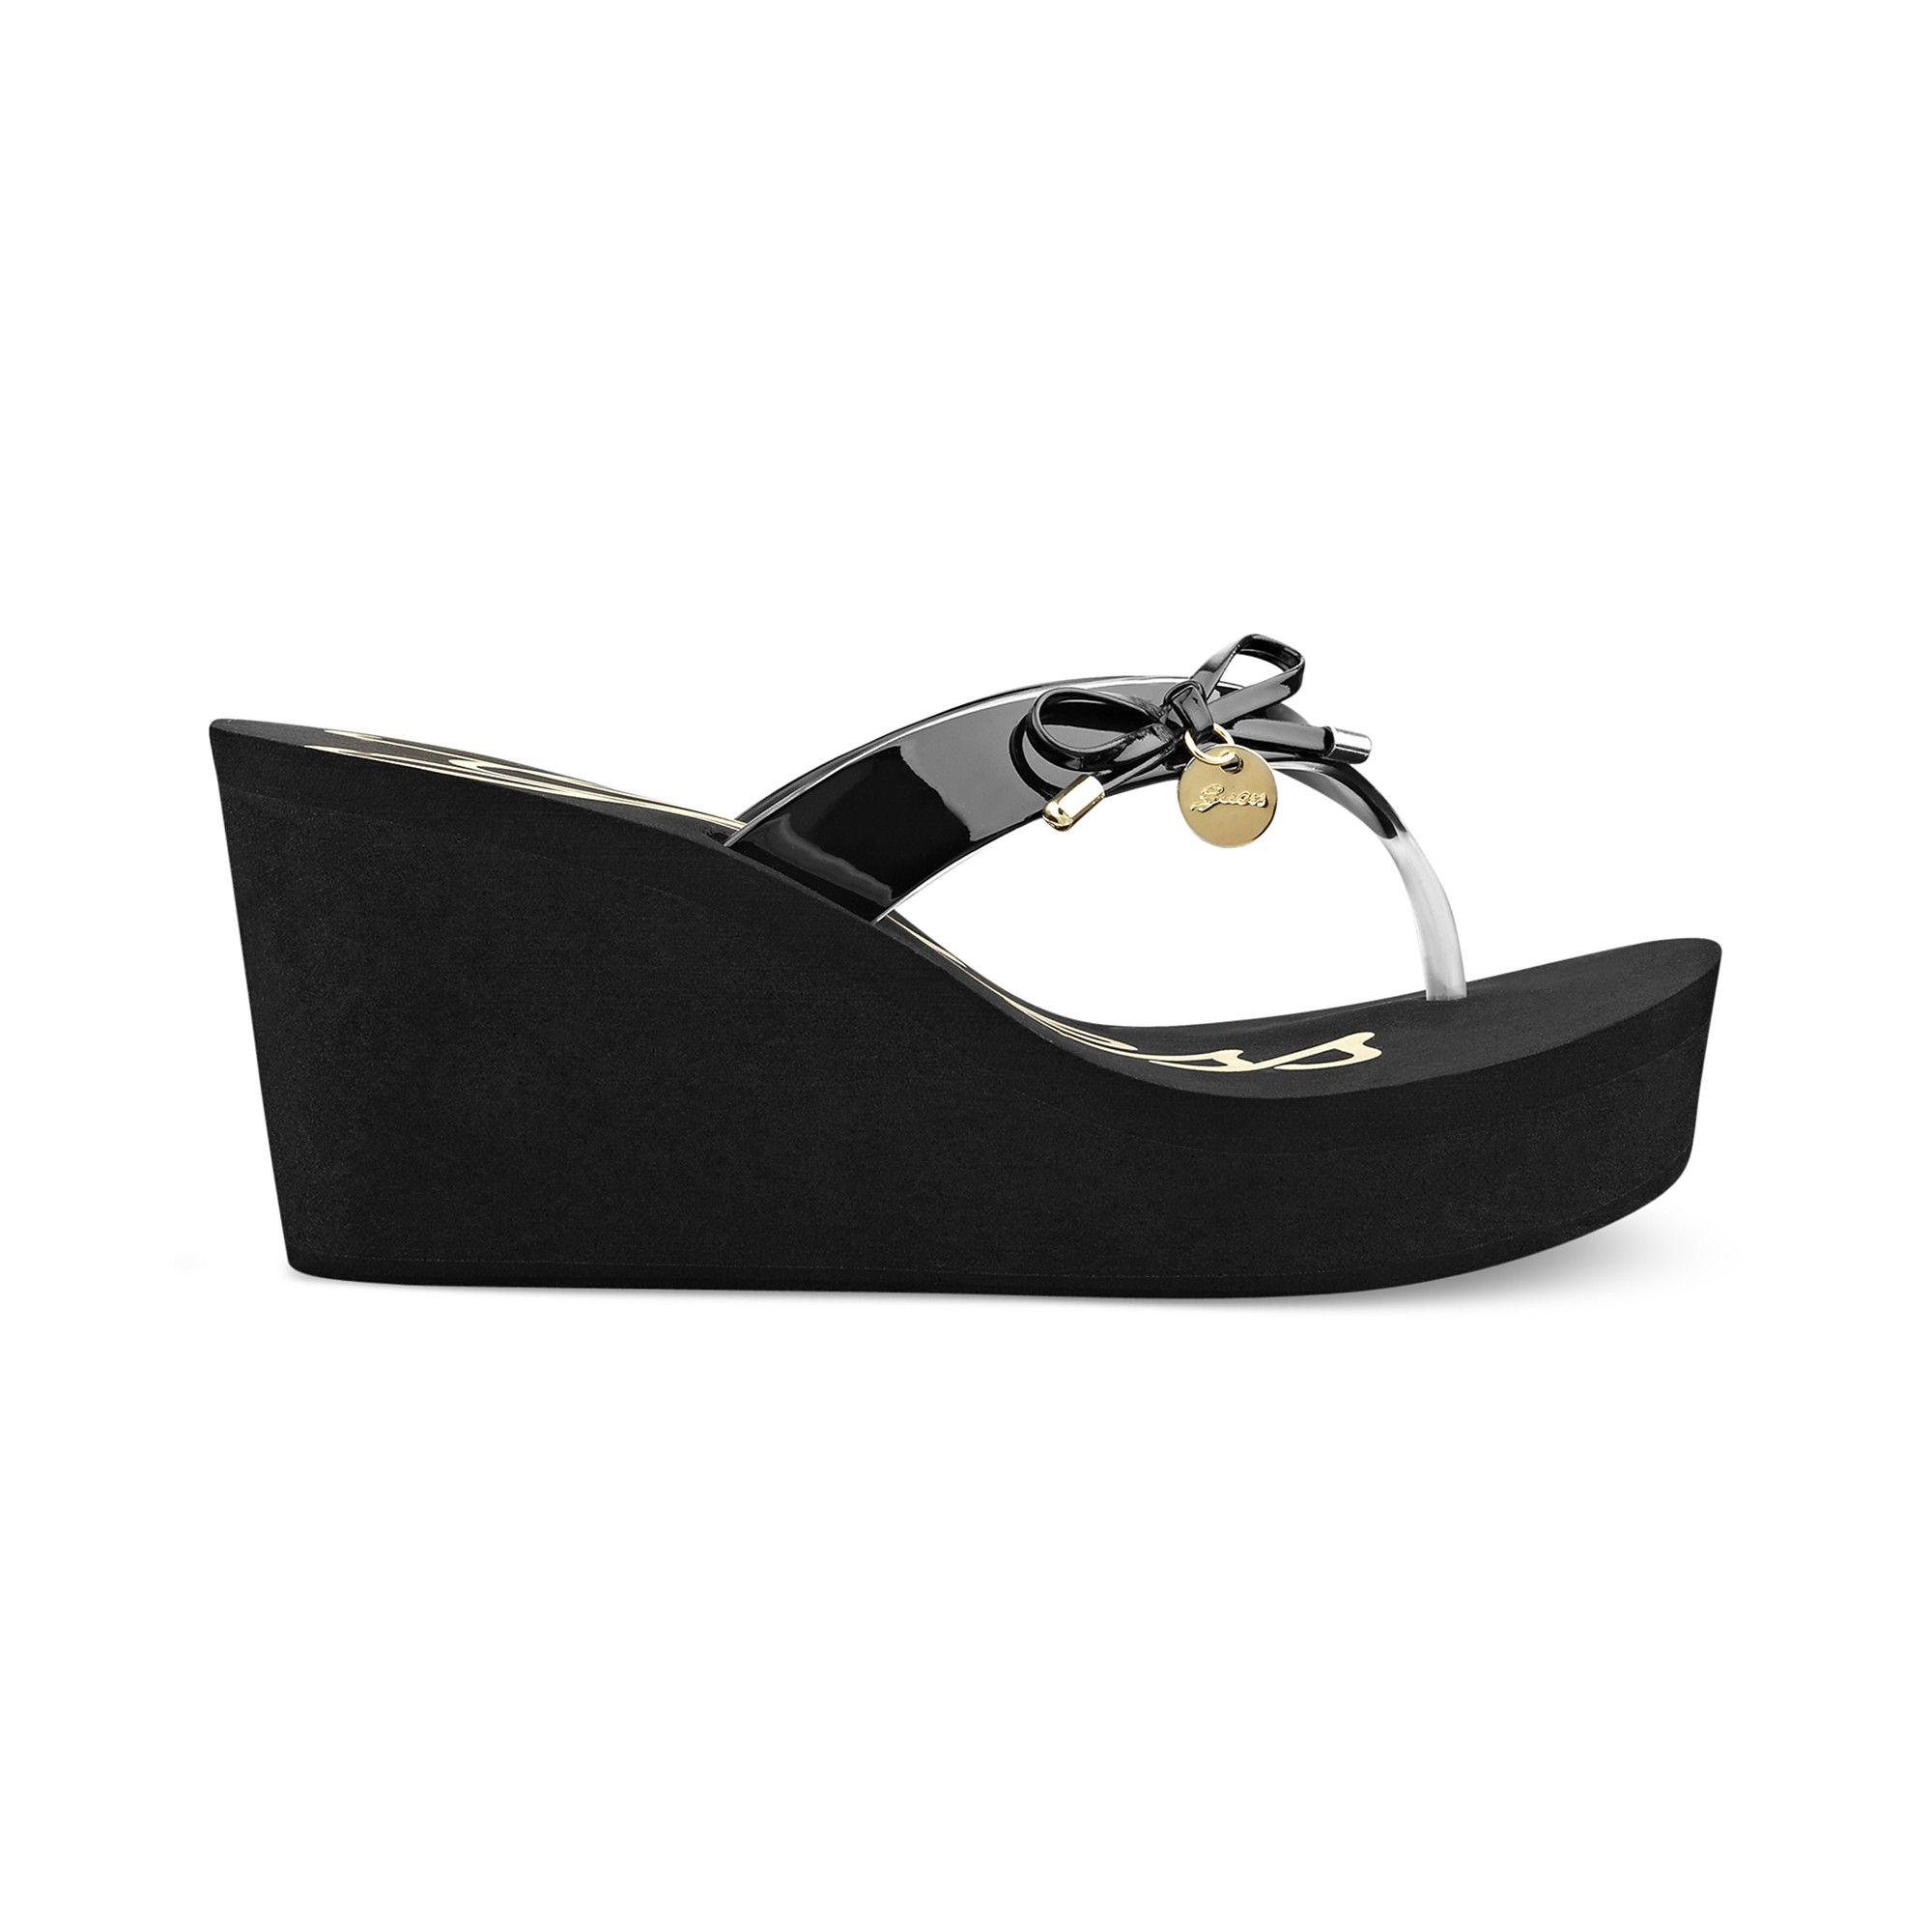 75f1f9acc2fb91 Lyst - Guess Shoes Sorliea Platform Wedge Thong Sandals in Black